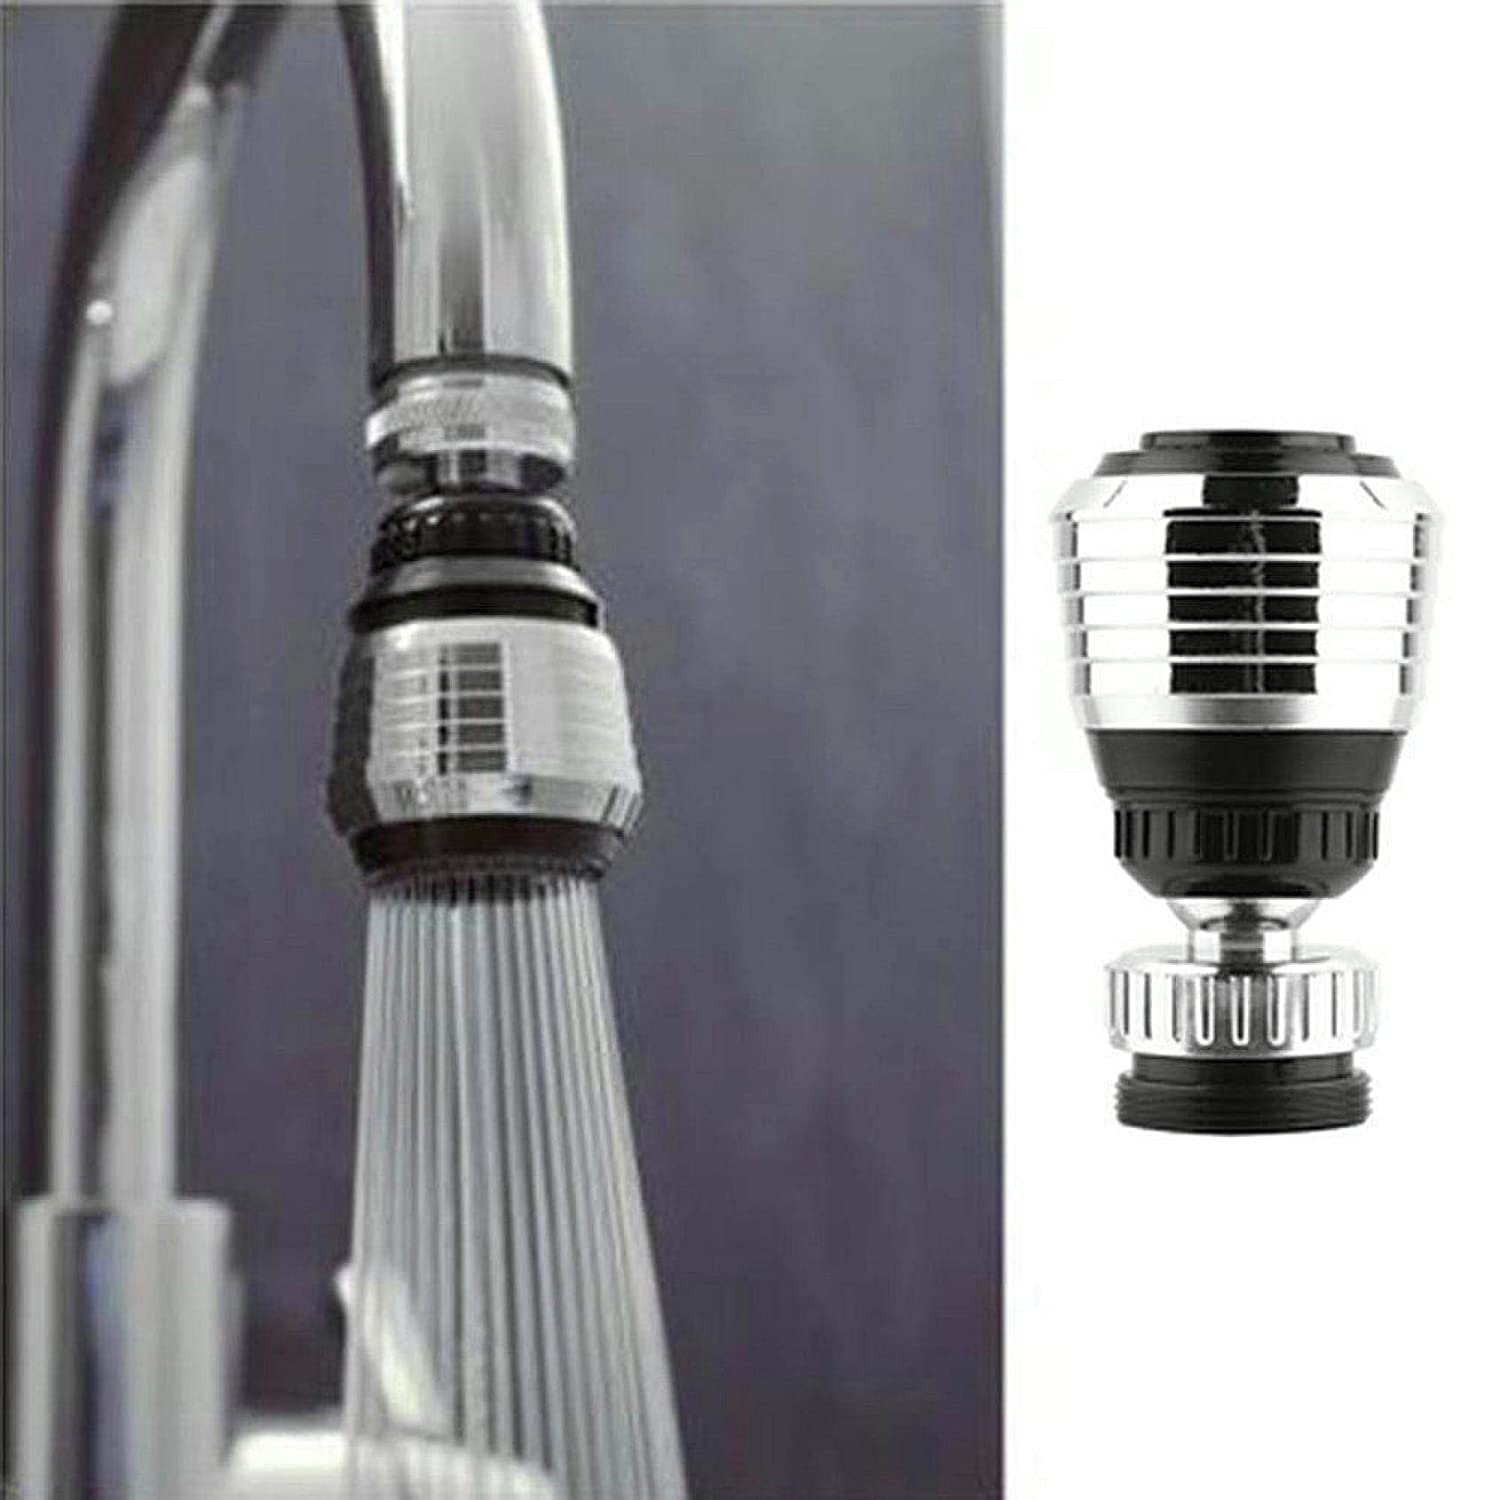 360 Rotate Swivel Water Saving Tap,Movable Flexible Aerator Extender For Toddlers Kitchen Tap Head With Filter Adapter Sliver Black